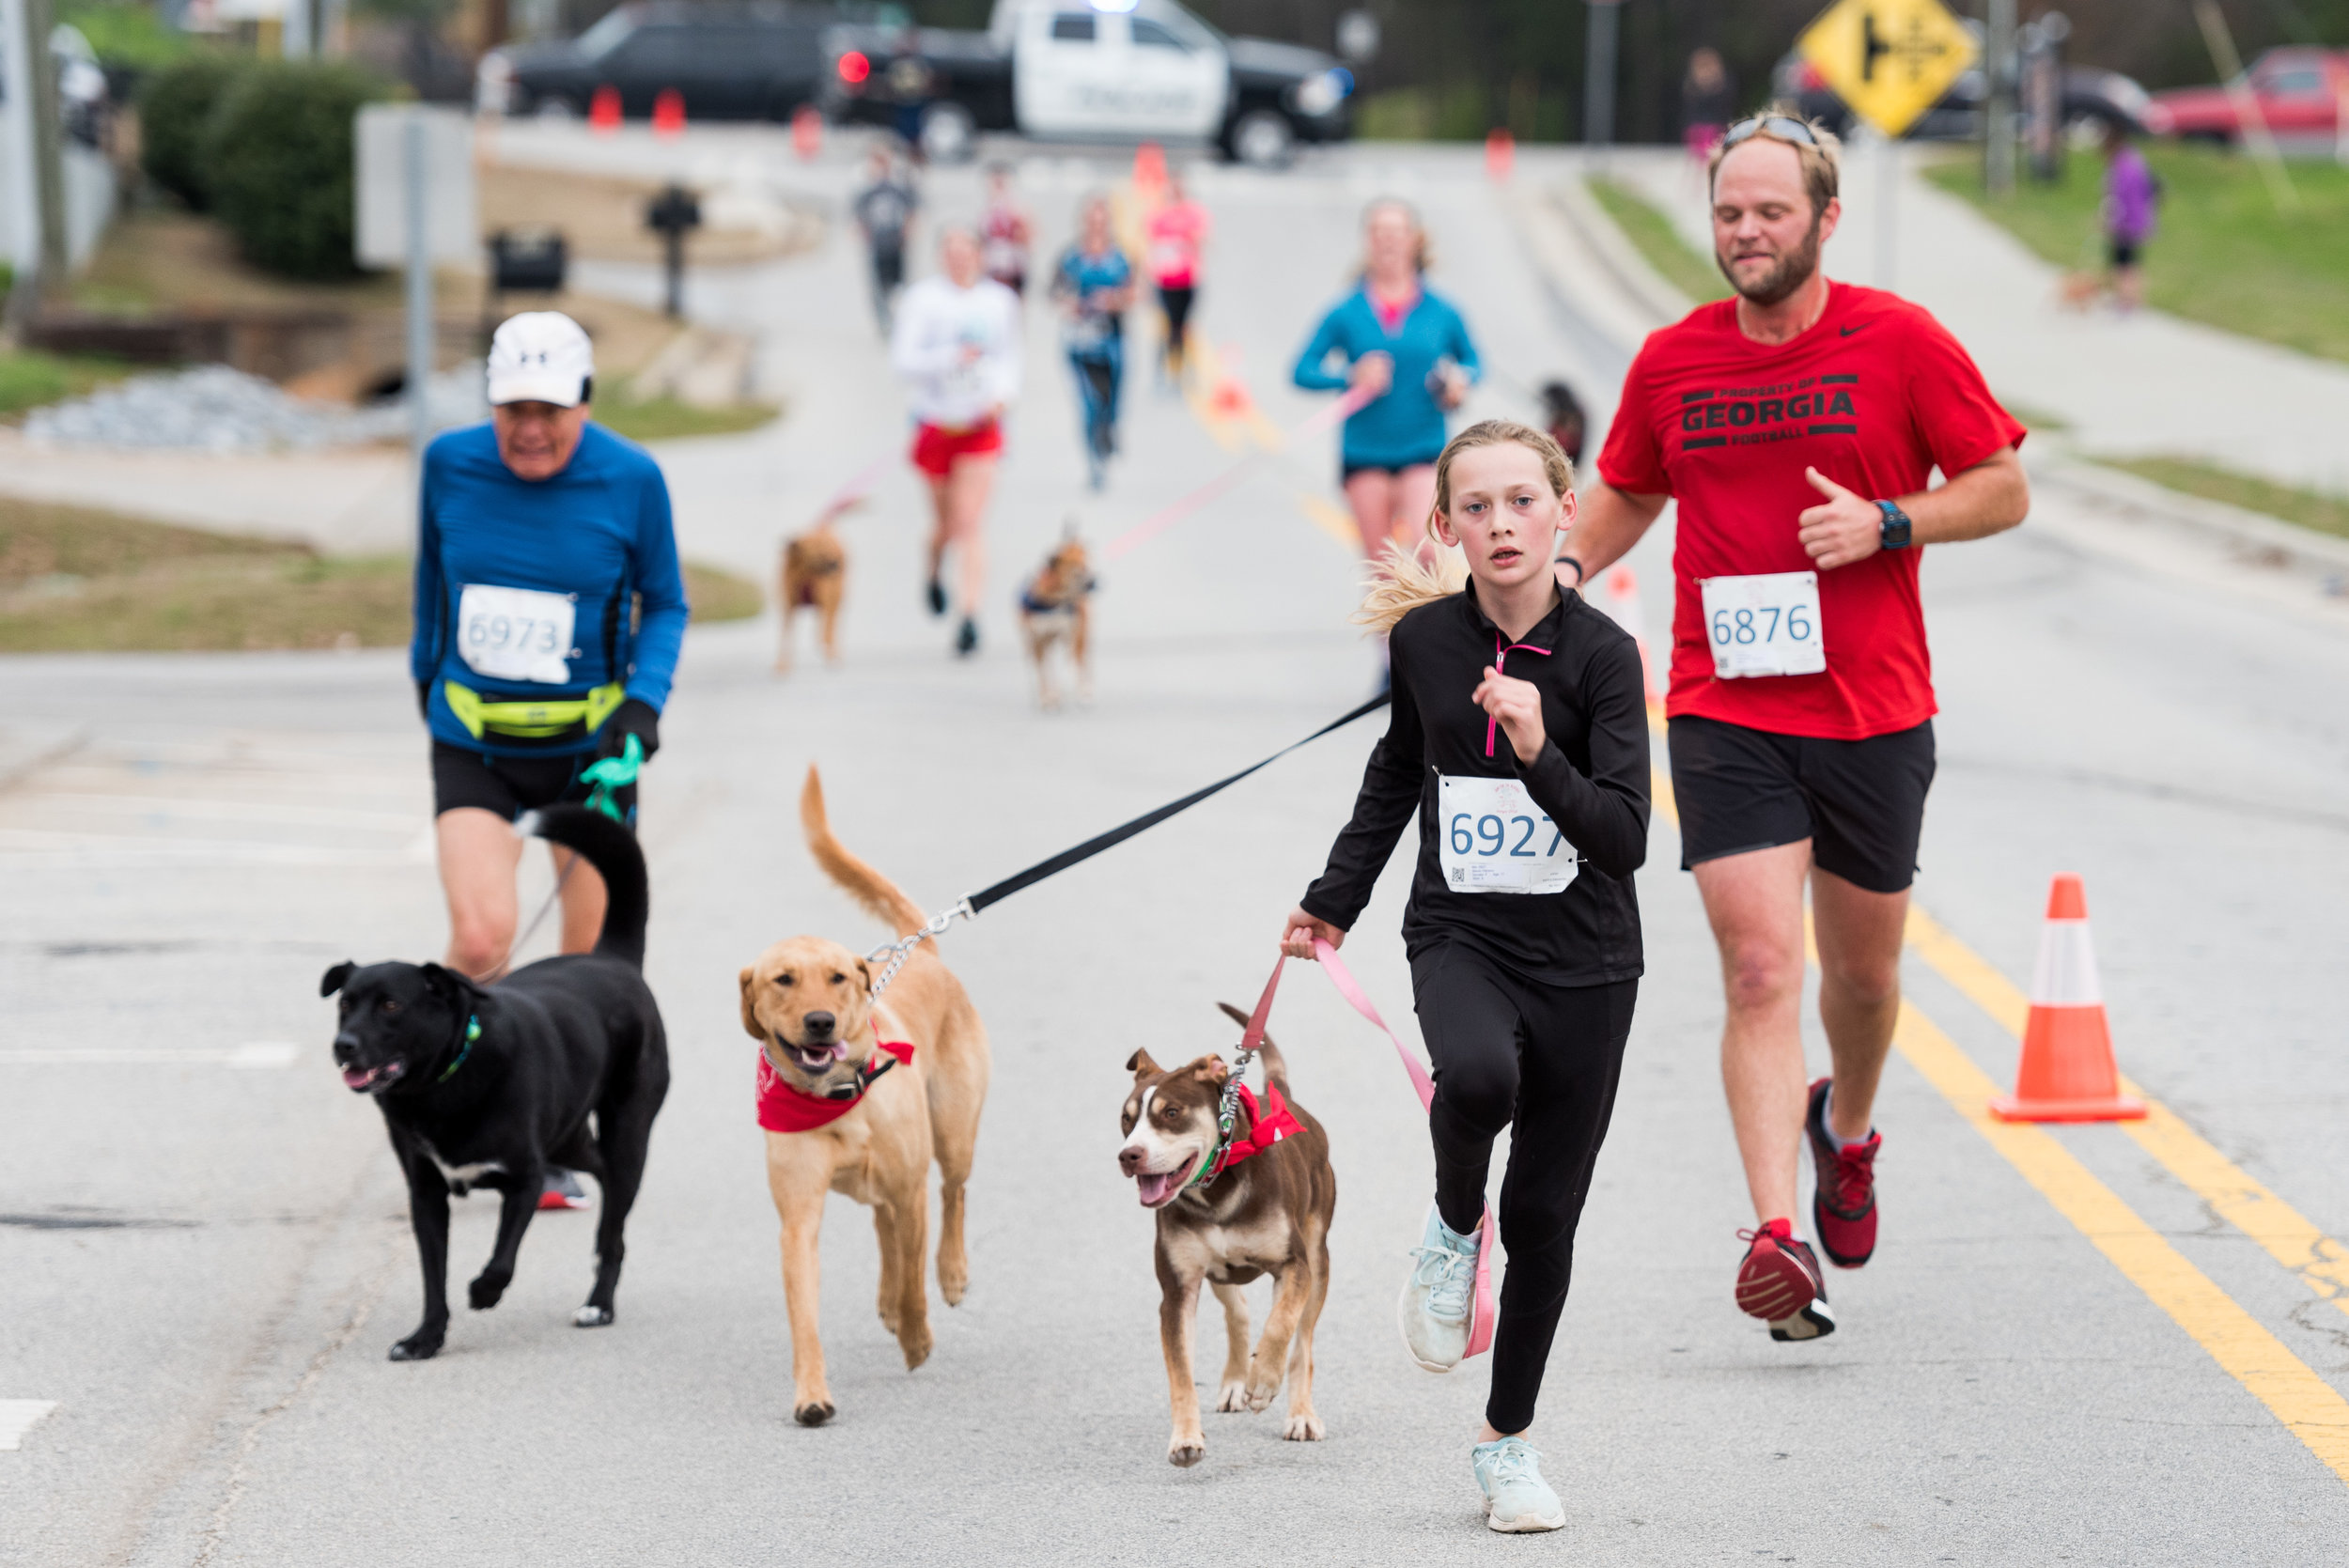 Maren Hanson, 11, runs for the finish line with George Daigh of Maysville (red) as part of the Farm to 5k challenge at the Run for the Rescues 5k on March 24 in Suwanee.